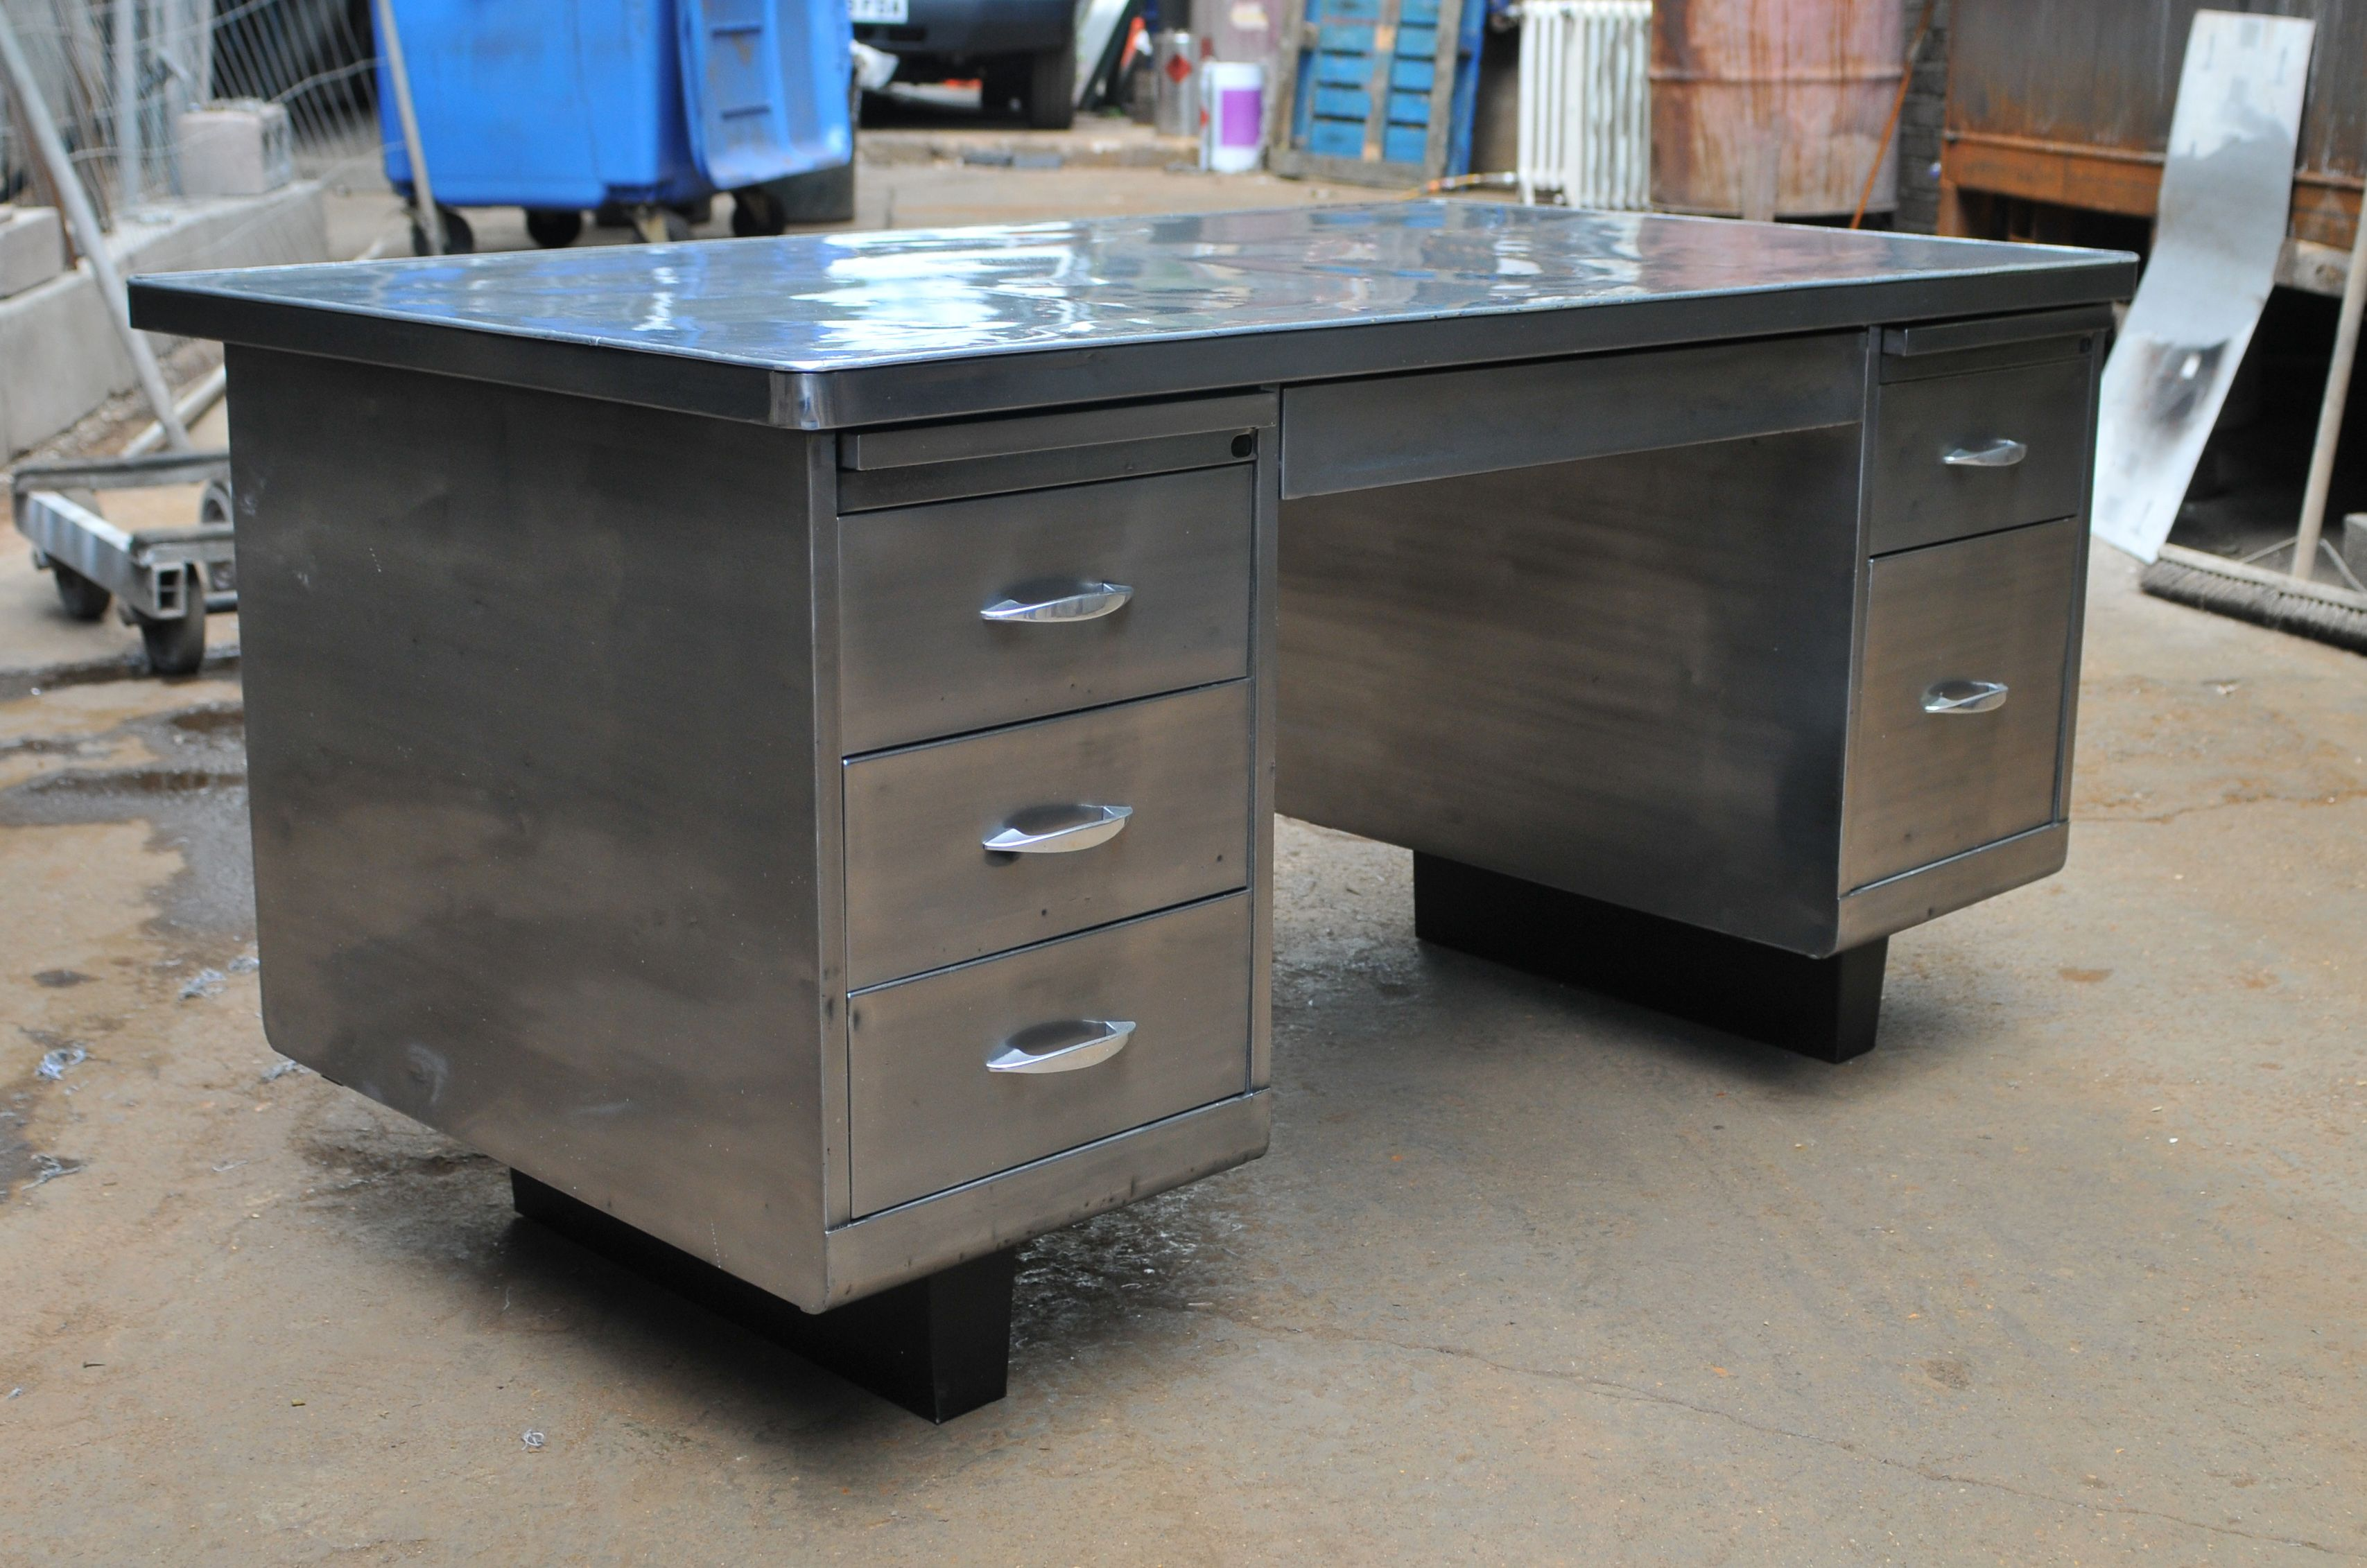 Uncategorized Vintage Steel Tanker Desk tanker desk which i already have love this thing guess what i